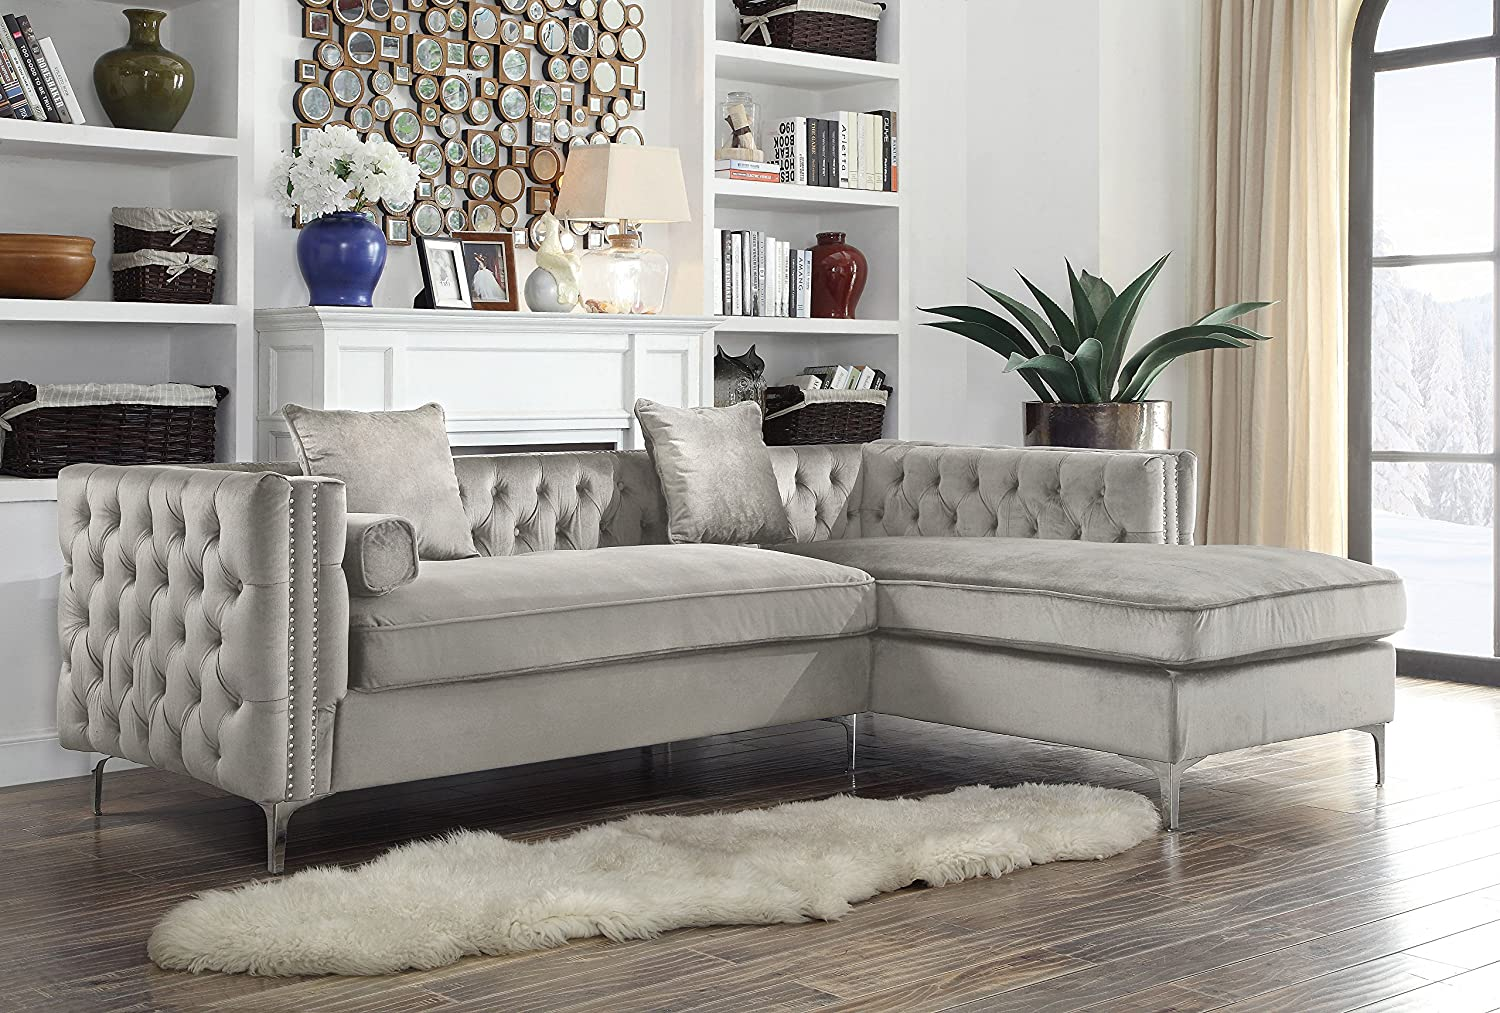 Iconic home chic home da vinci velvet modern contemporary button tufted with silver nailhead trim silvertone metal y leg right facing sectional sofa silver